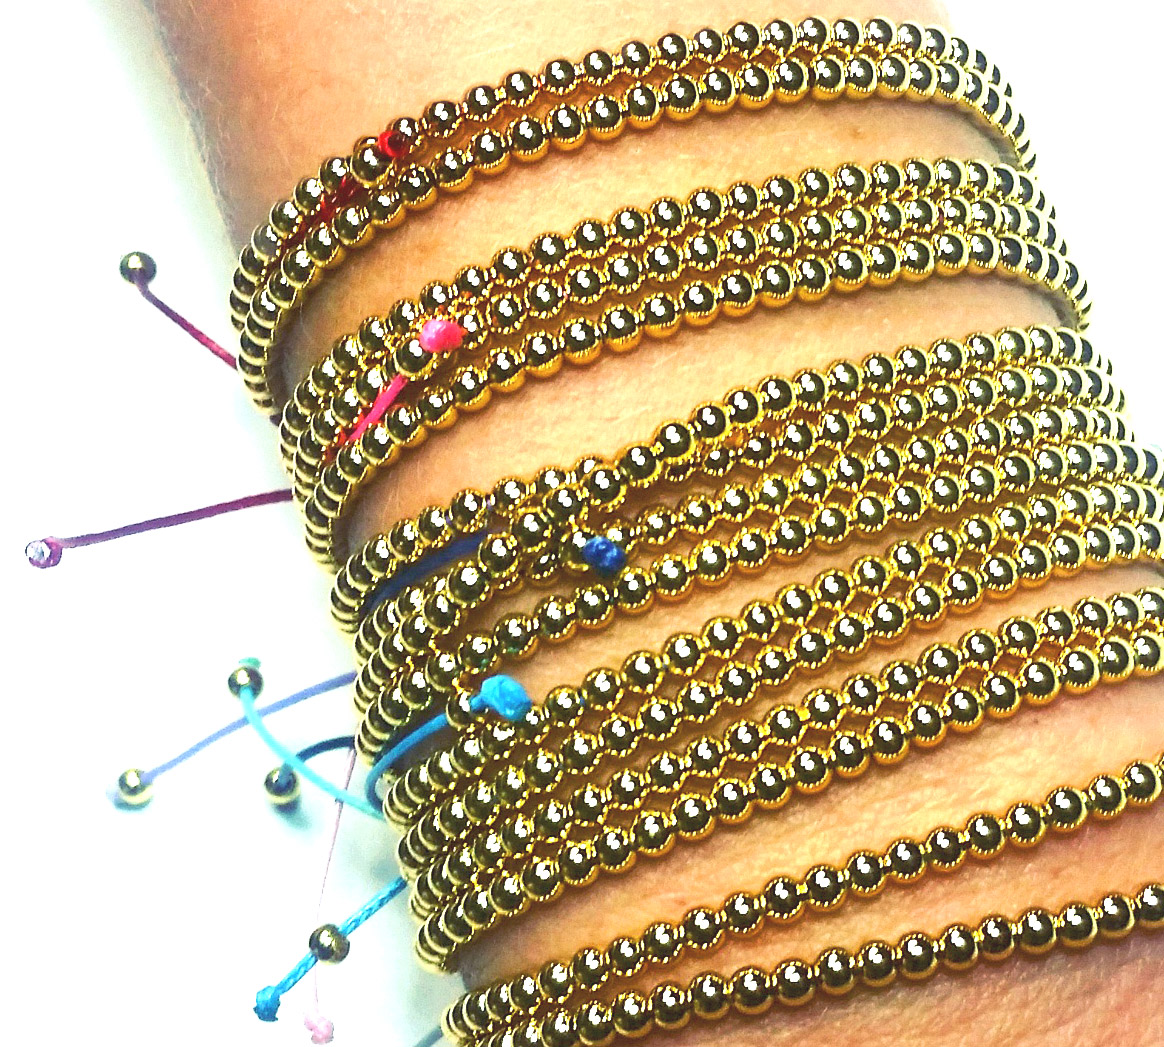 Wax Cord Bracelets with Gold Beads